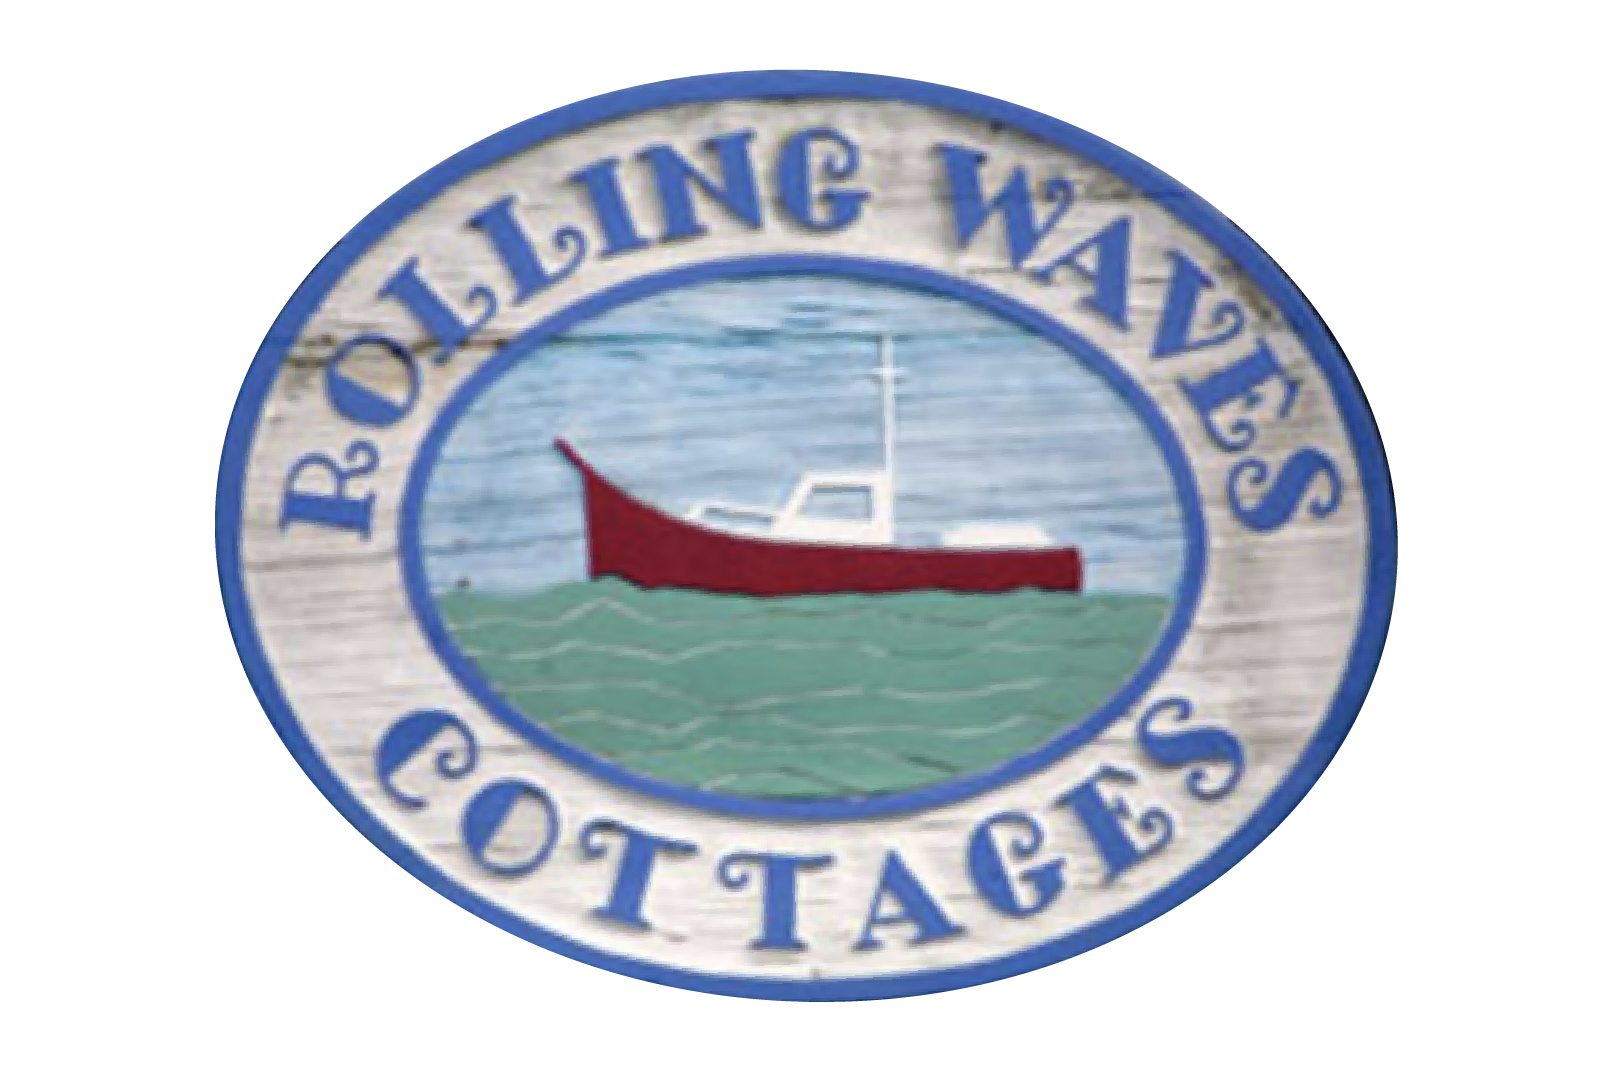 Rolling Waves Beach Cottages